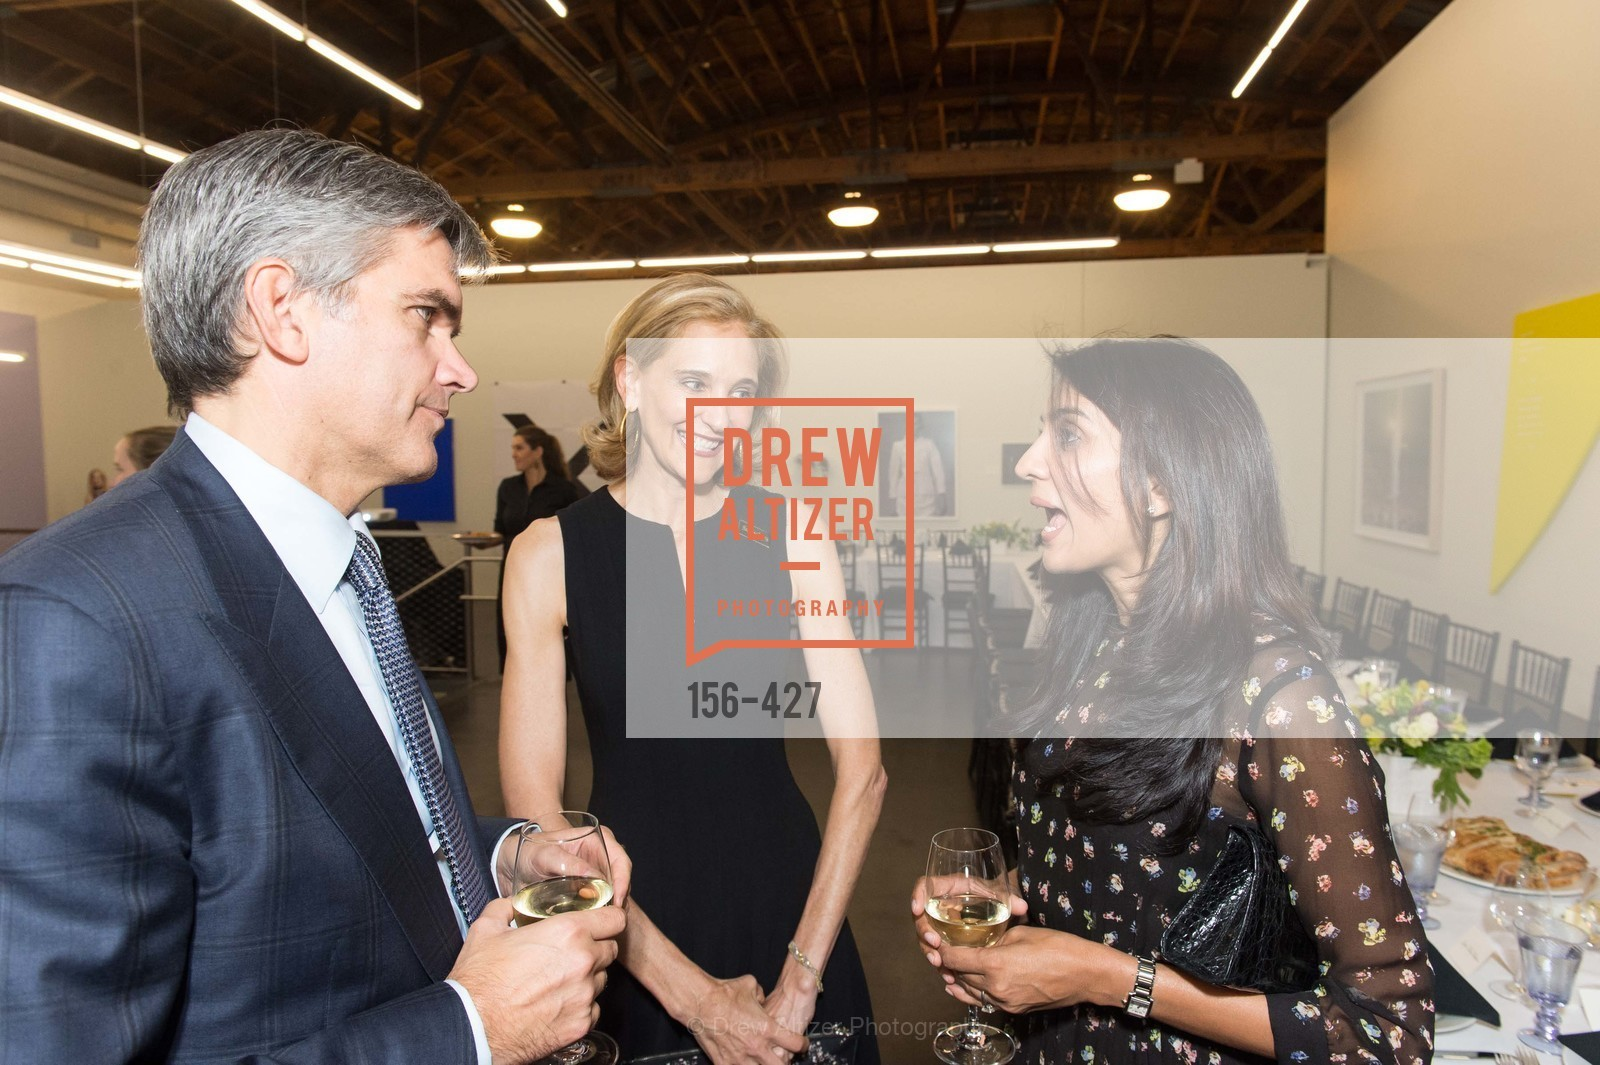 Tad Smith, Jennifer Biederbeck, Alka Agrawal, Artsy and Sotheby's Dinner at Fused, Fused, October 29th, 2015,Drew Altizer, Drew Altizer Photography, full-service agency, private events, San Francisco photographer, photographer california